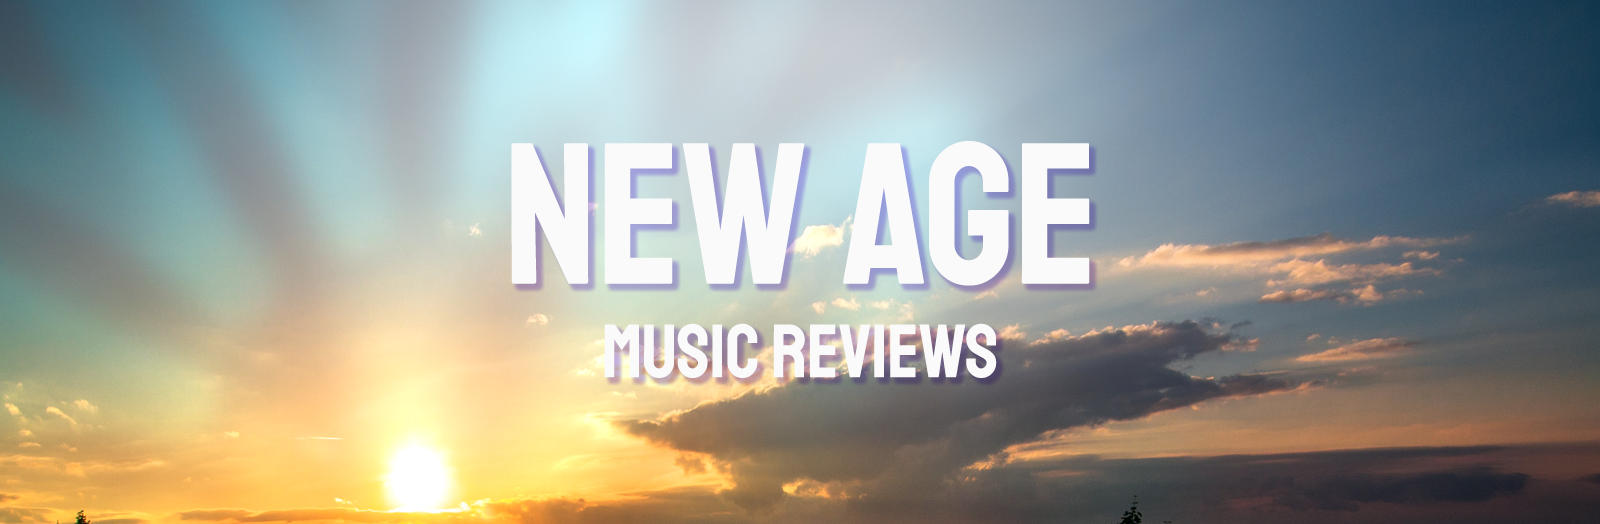 New Age Music Reviews